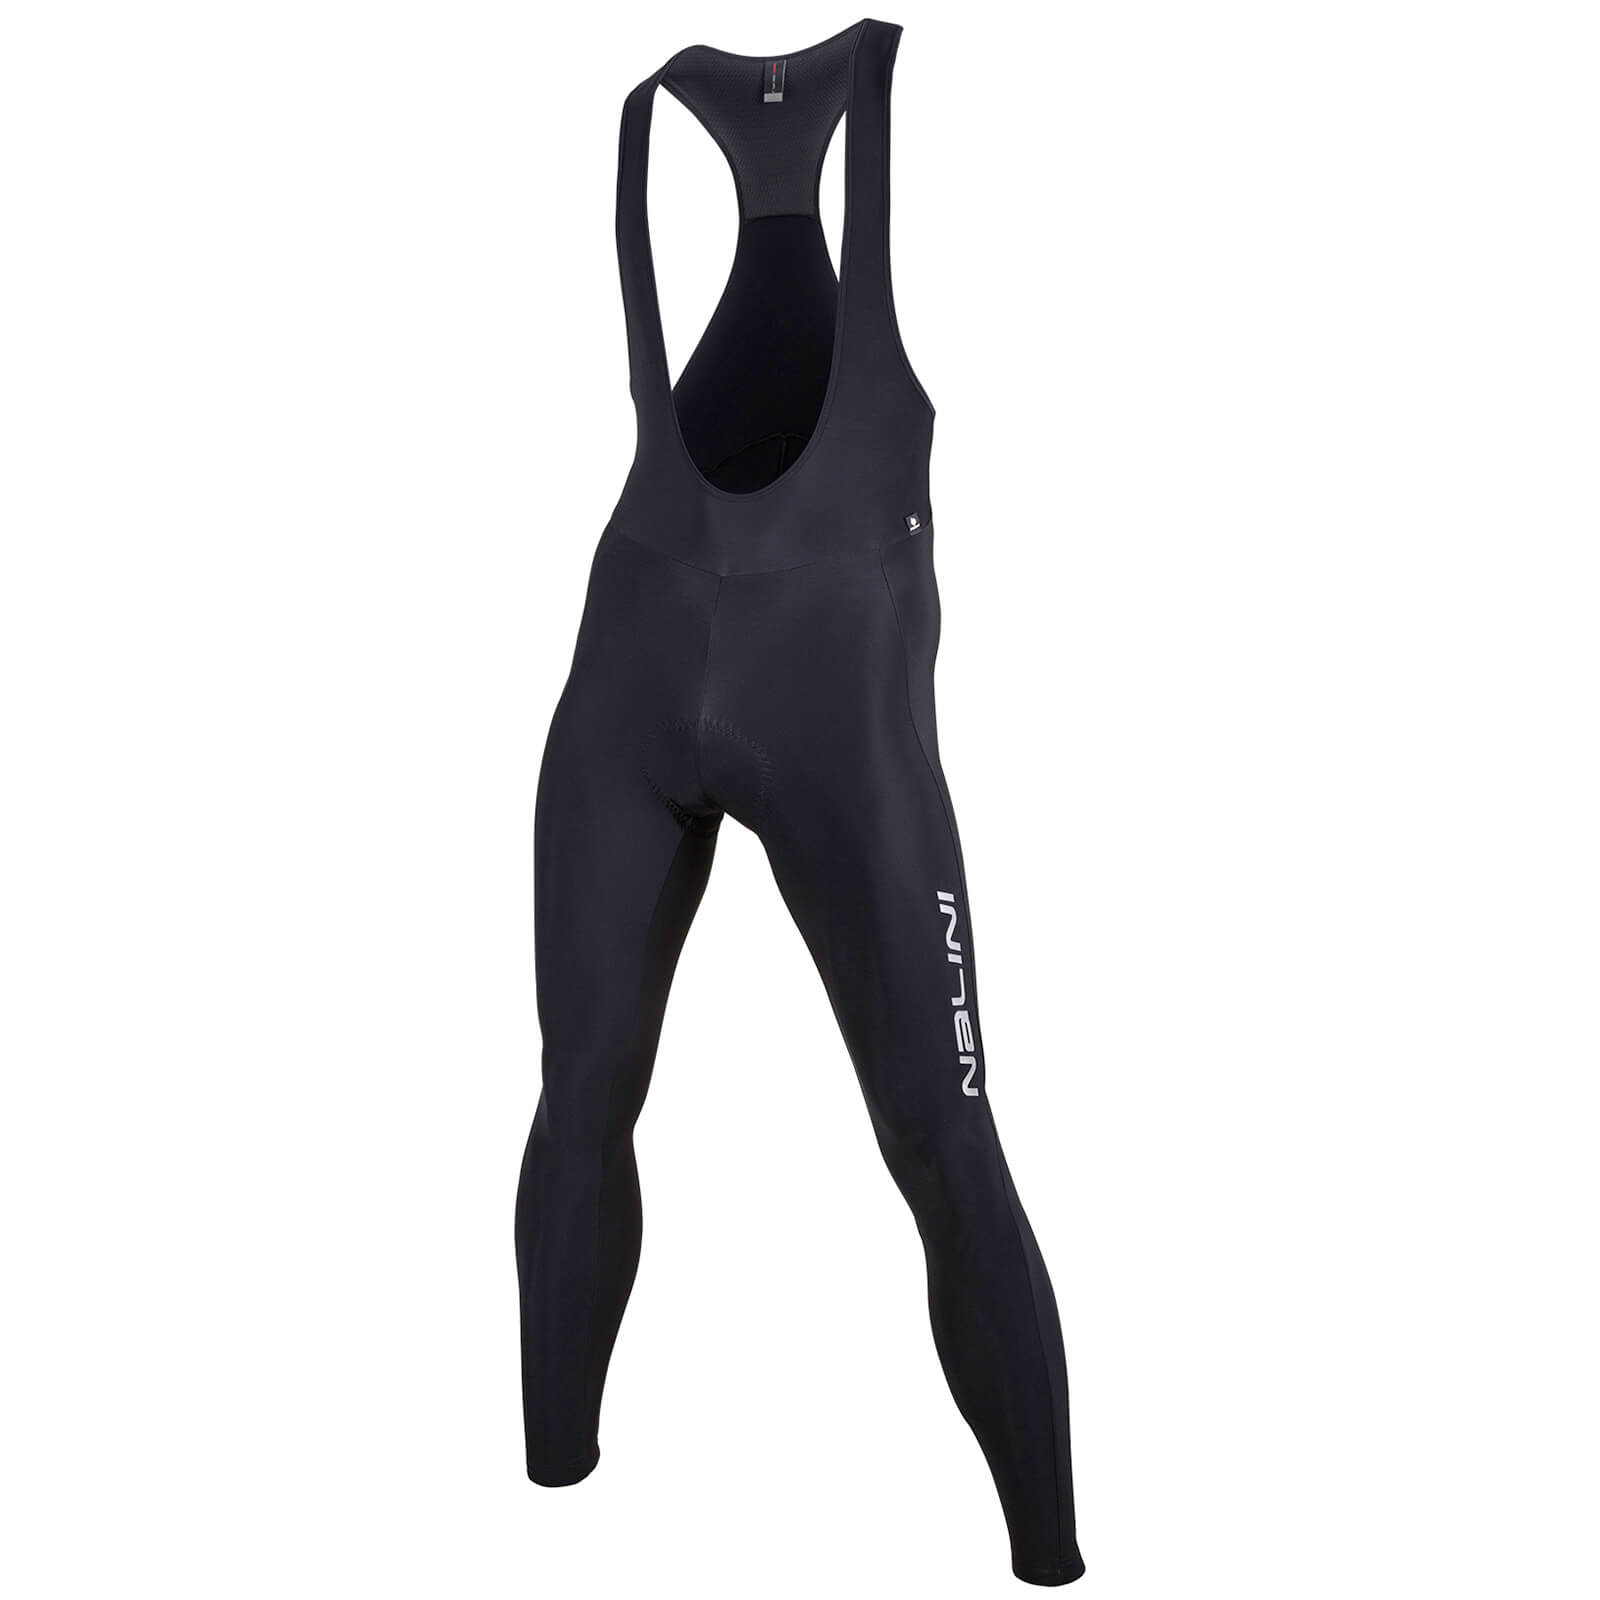 Nalini Aludra Thermo Bib Tights - Black